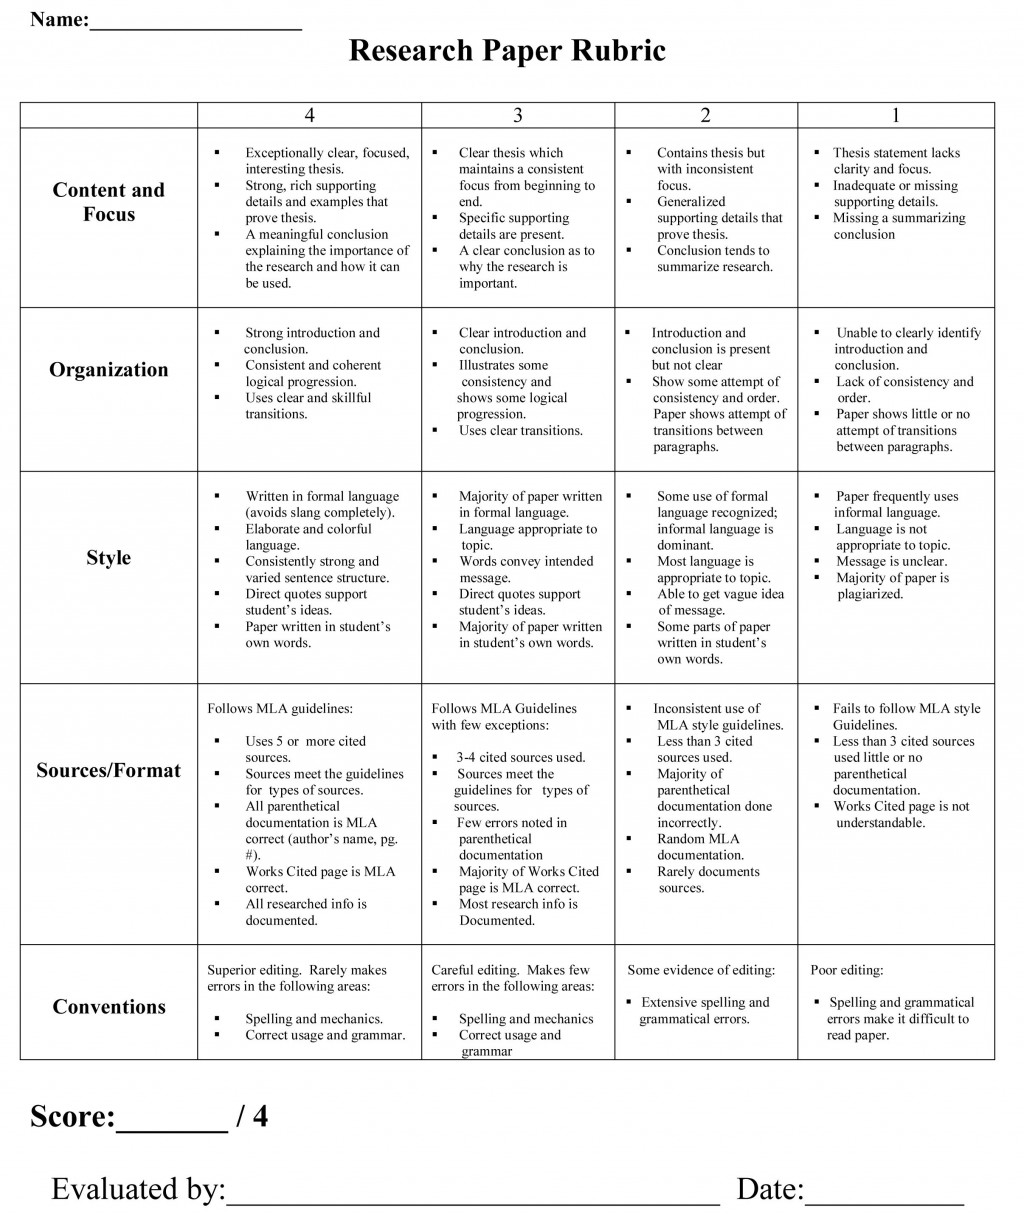 003 Research Paper Political Science Unique Rubric Large